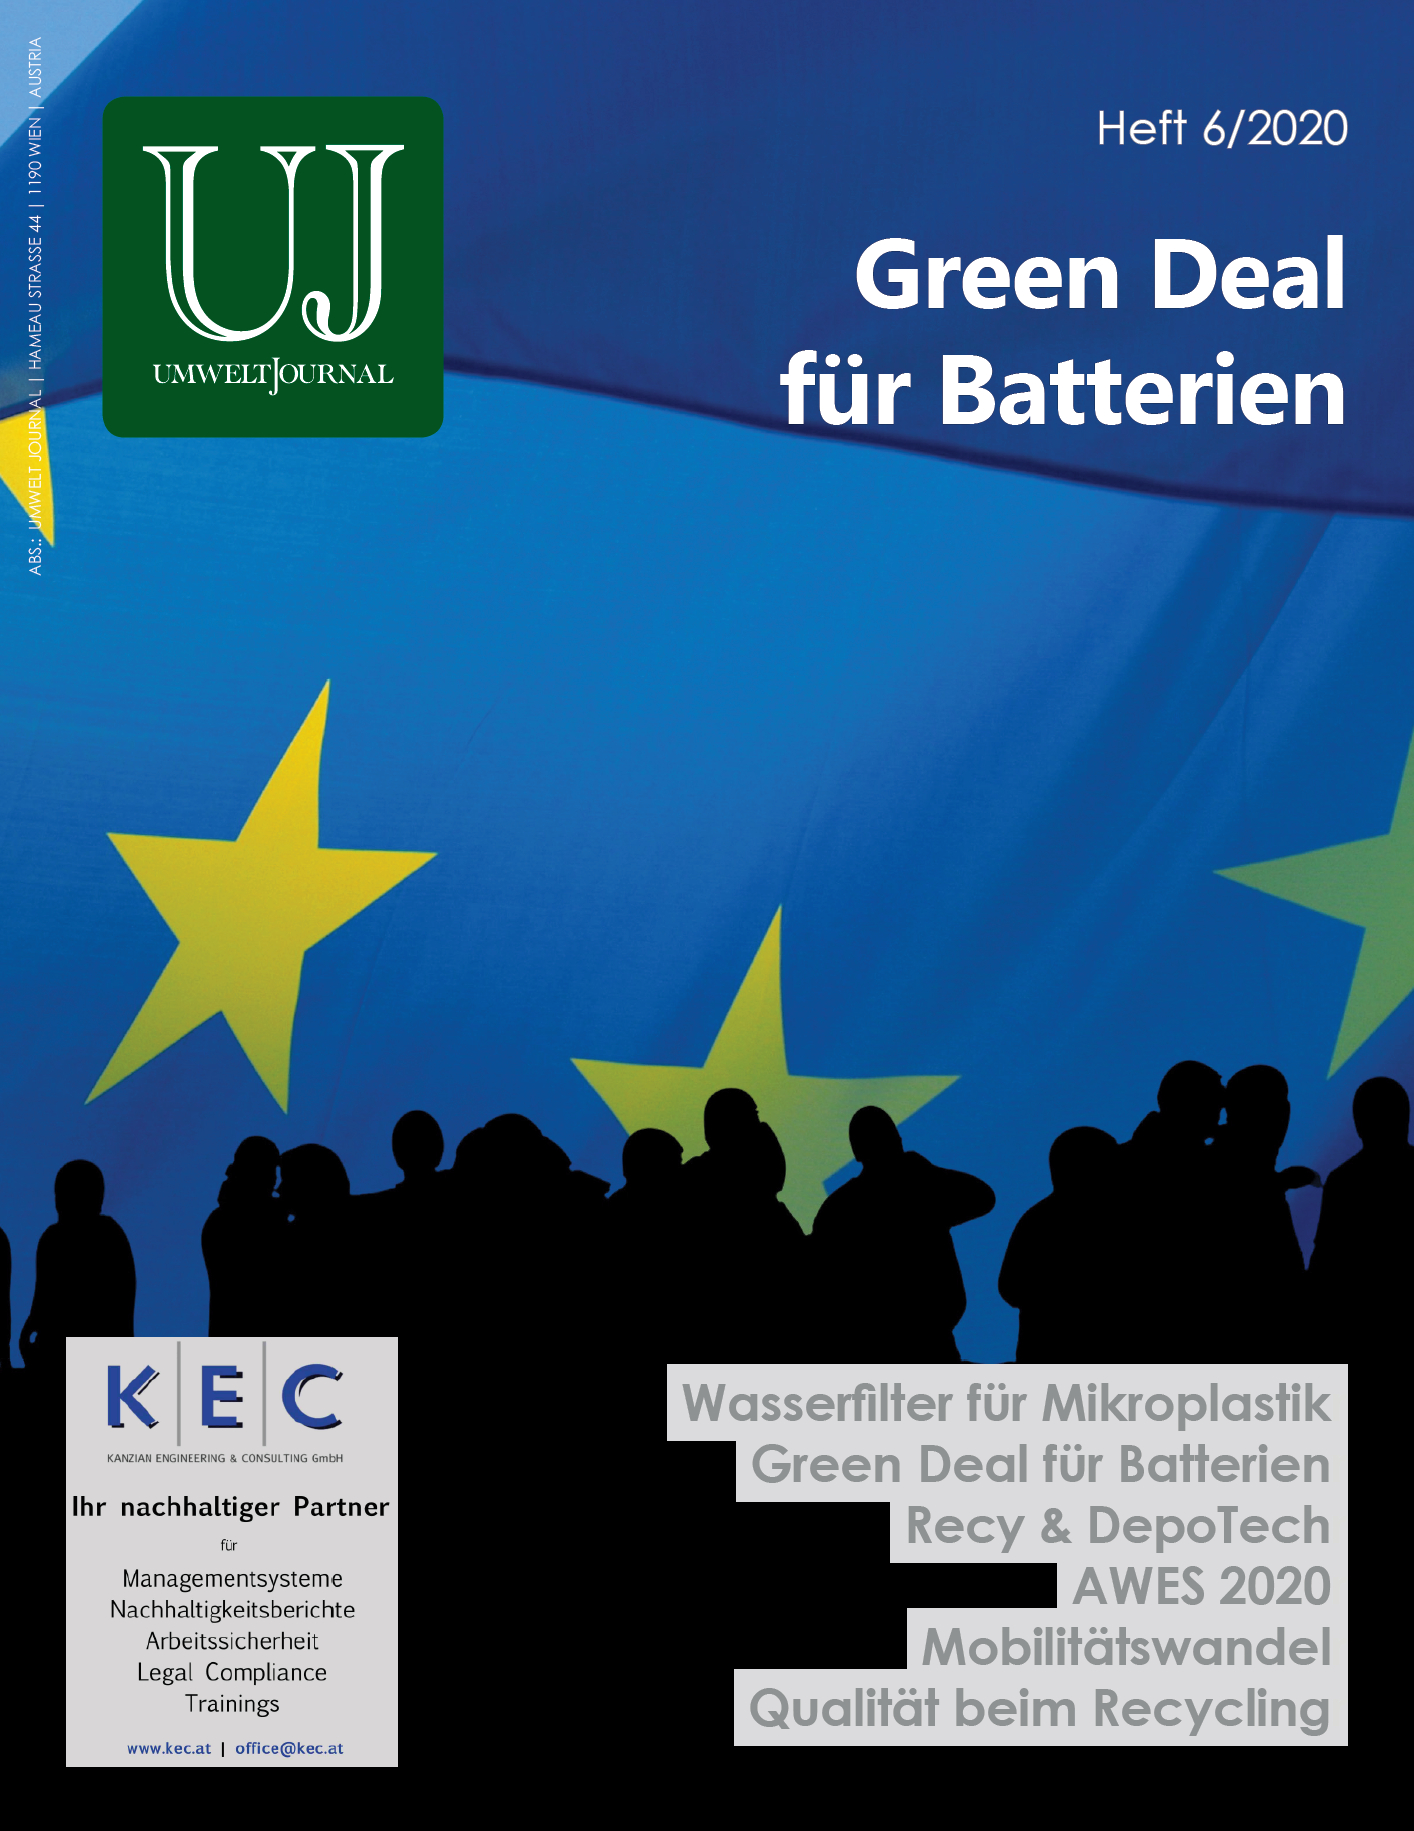 Foto: UMWELT JOURNAL Nr. 6/2020, Cover